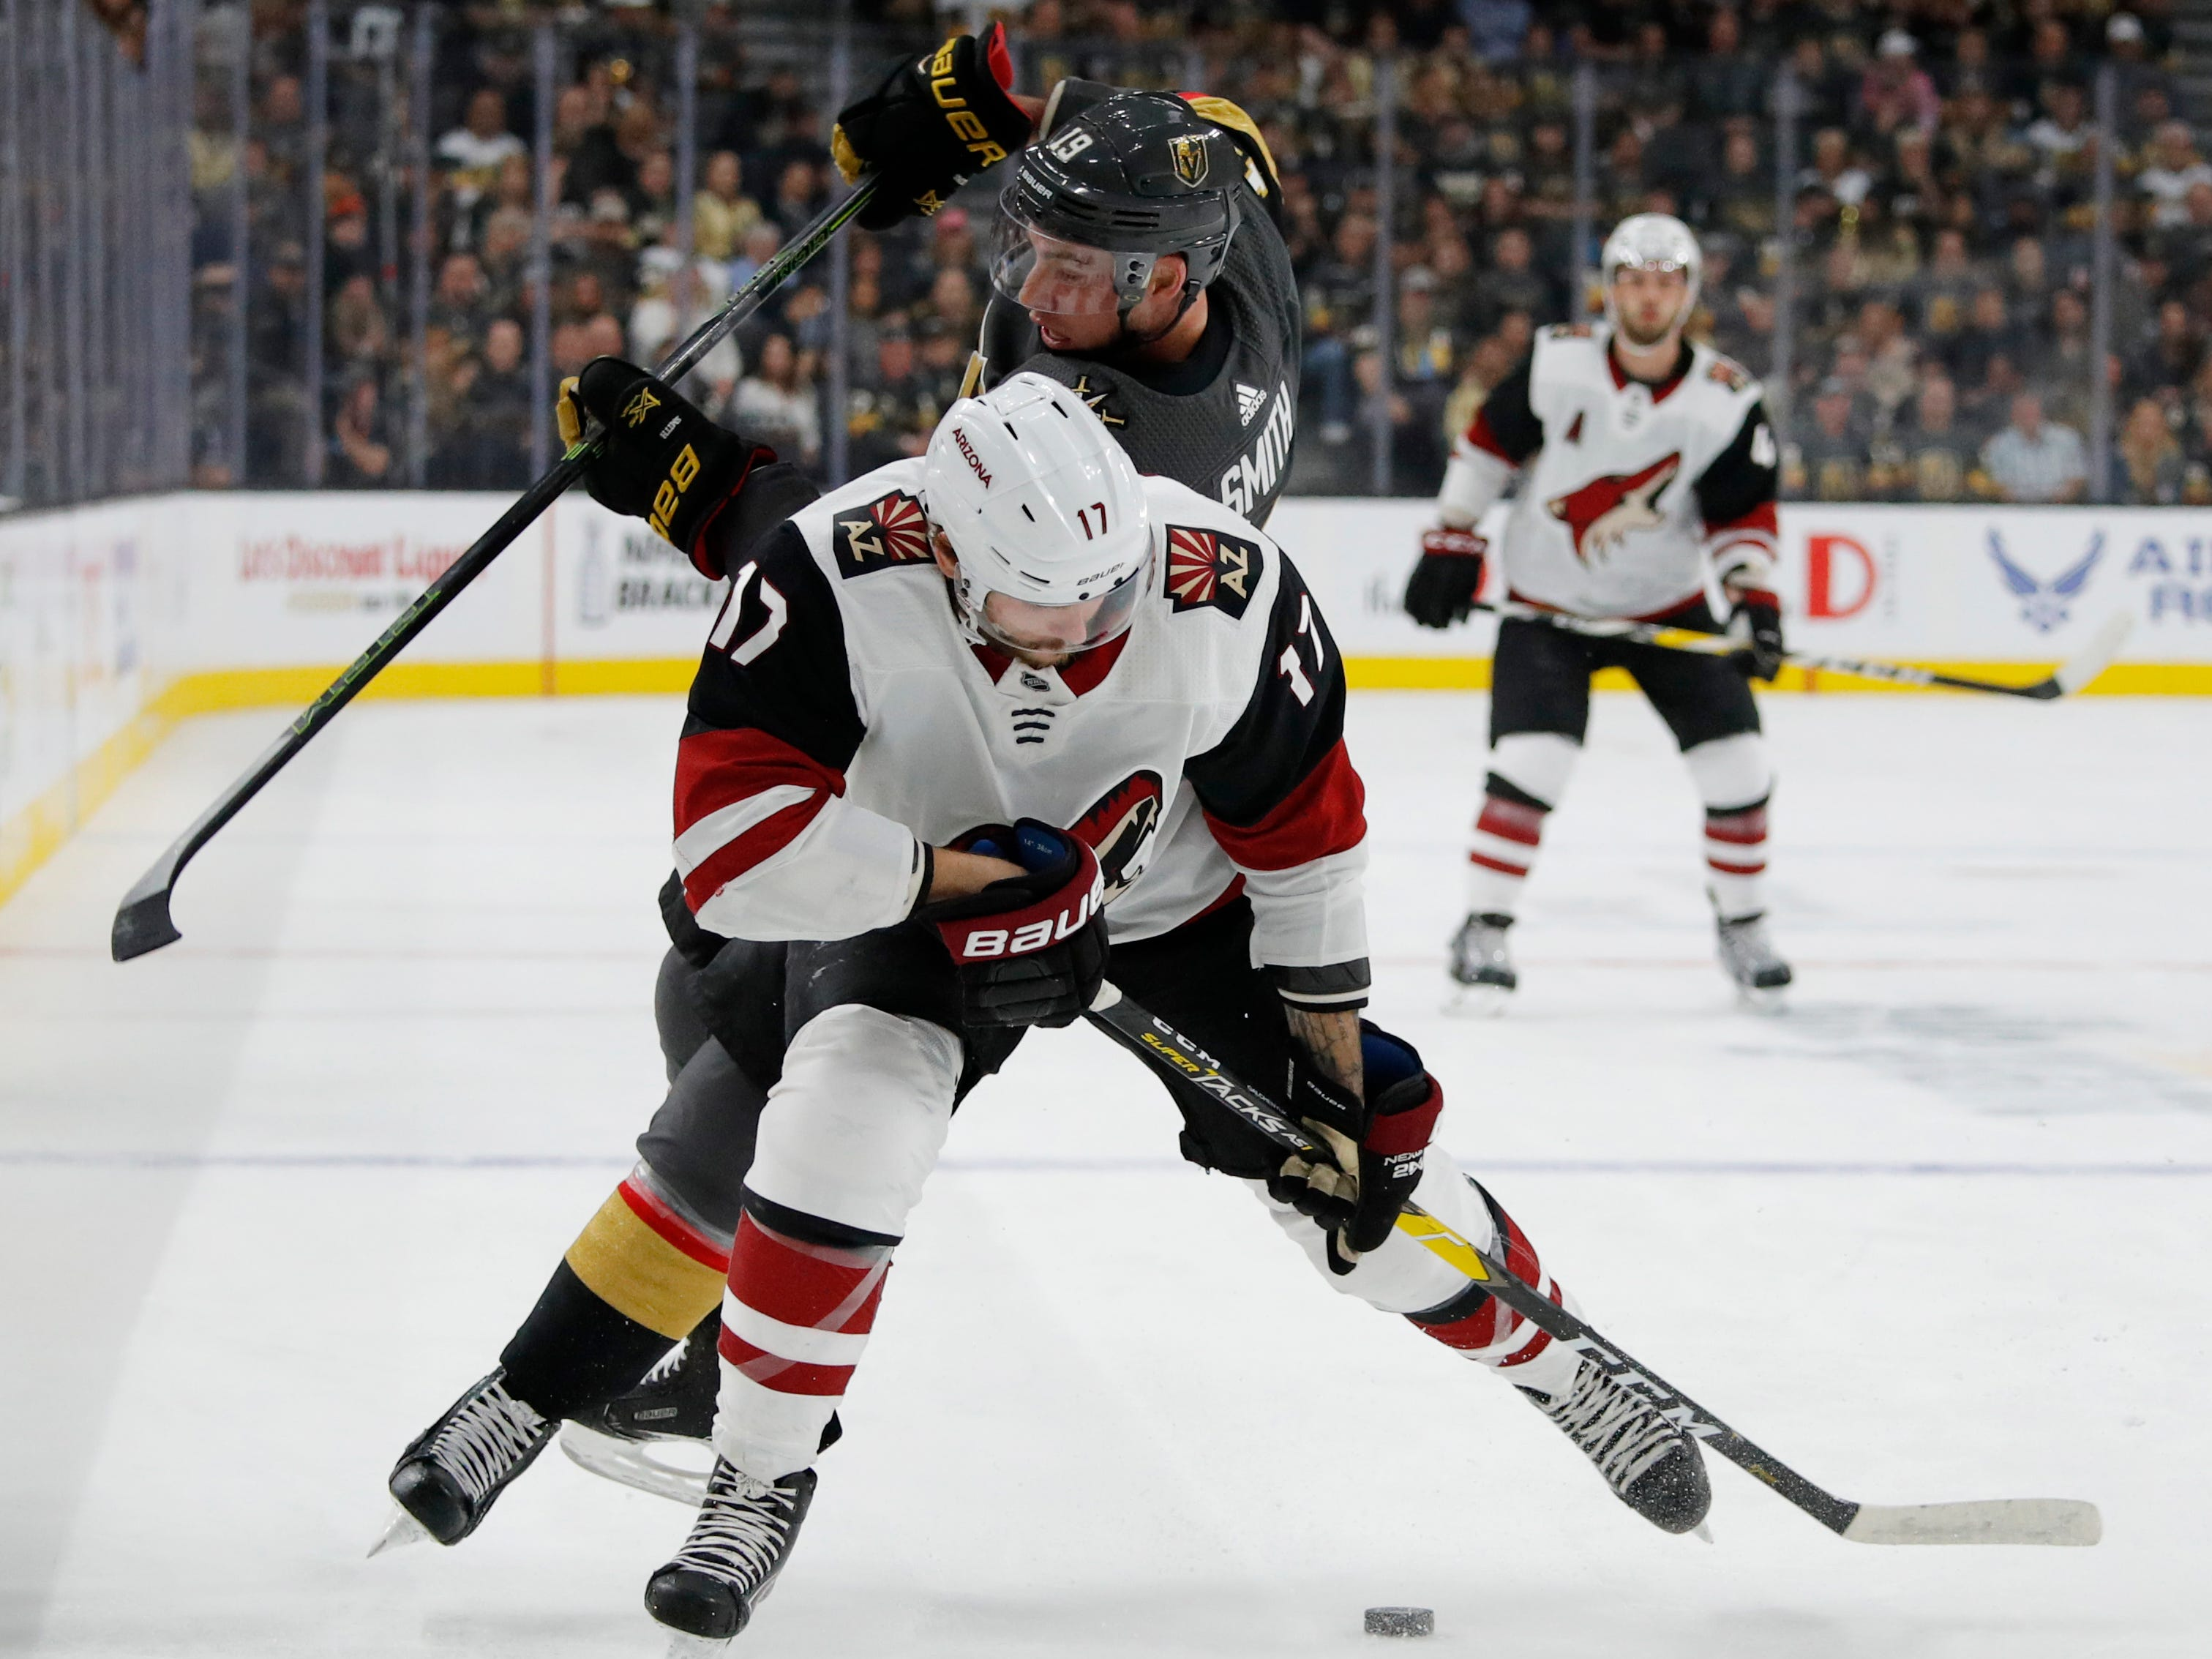 Arizona Coyotes center Alex Galchenyuk (17) skates around Vegas Golden Knights right wing Reilly Smith (19) during the first period of an NHL hockey game Thursday, April 4, 2019, in Las Vegas.